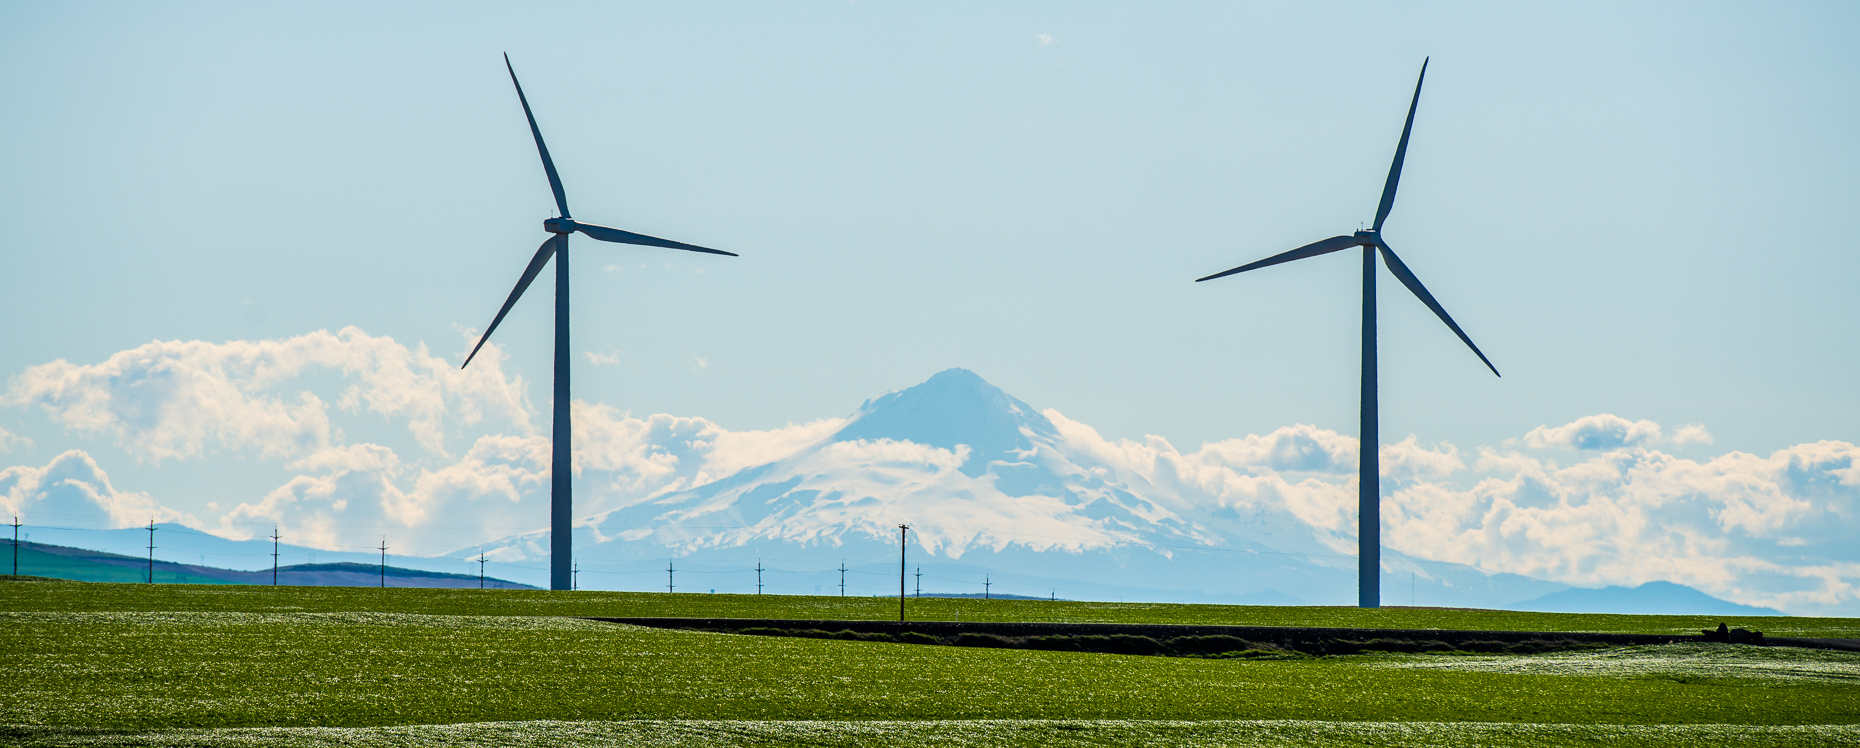 Mt. Hood | Clean Energy Construction Photography | Wind Energy in the Landscape